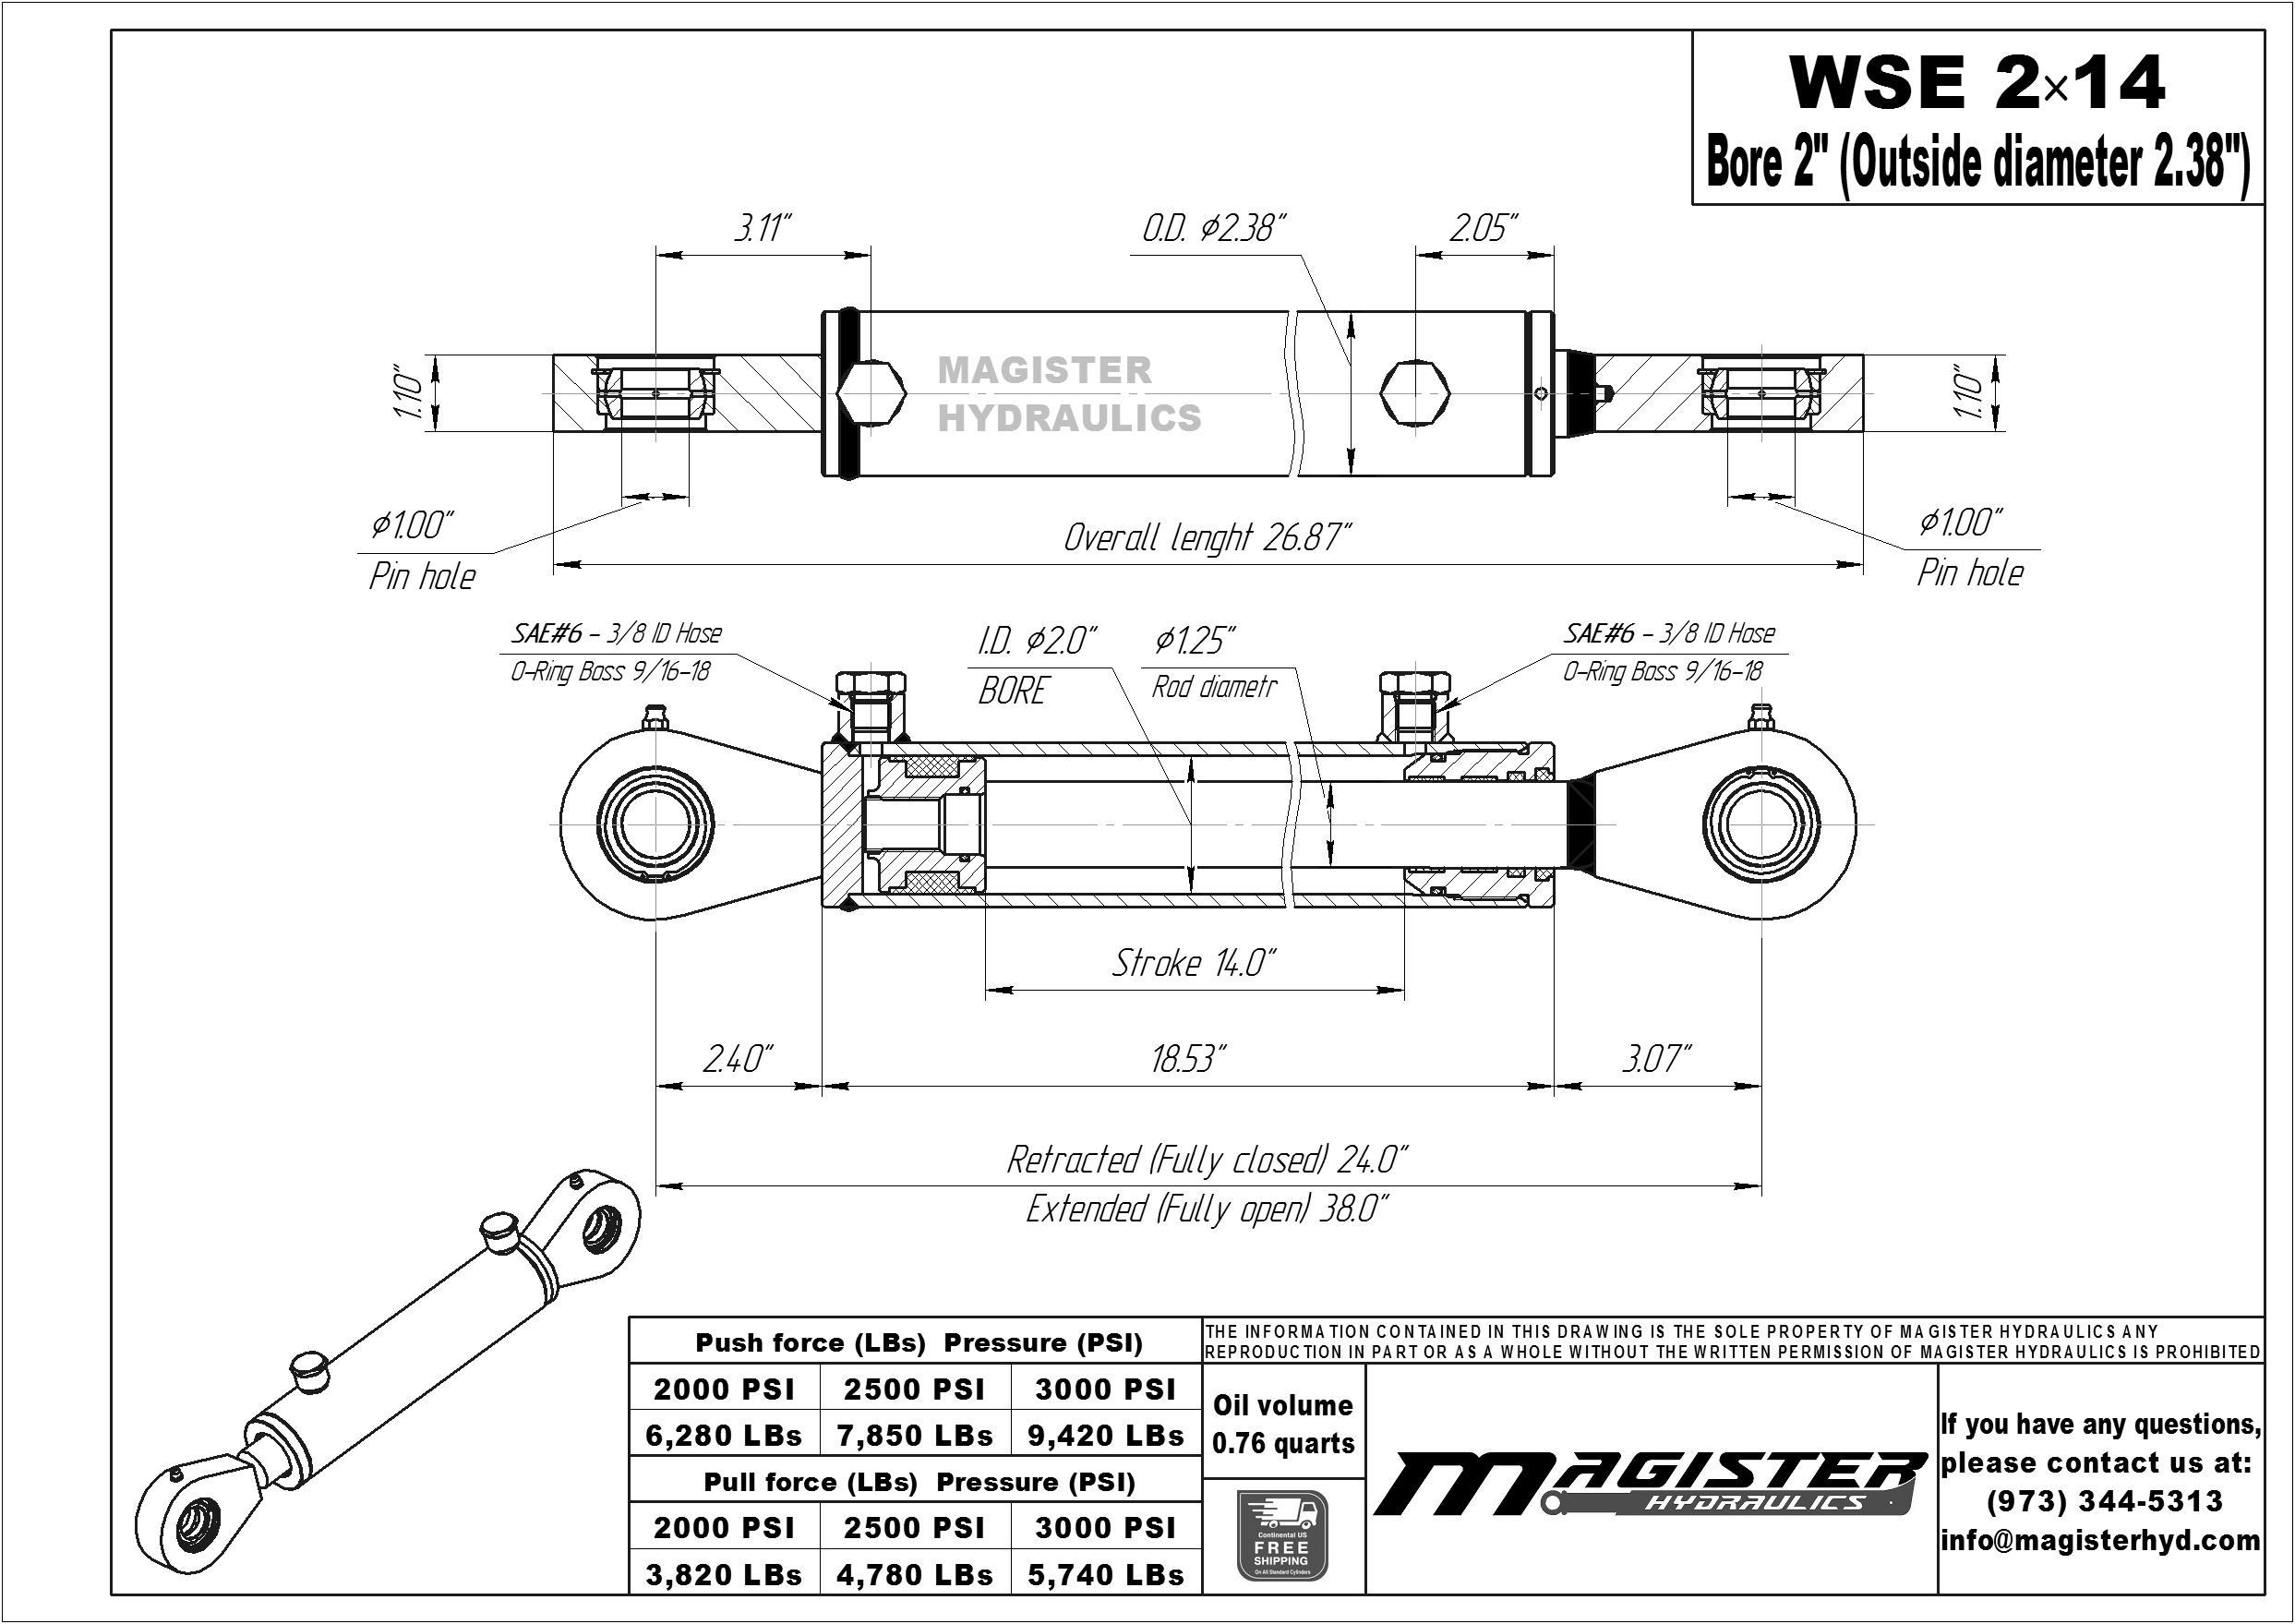 2 bore x 14 stroke hydraulic cylinder, welded swivel eye double acting cylinder | Magister Hydraulics